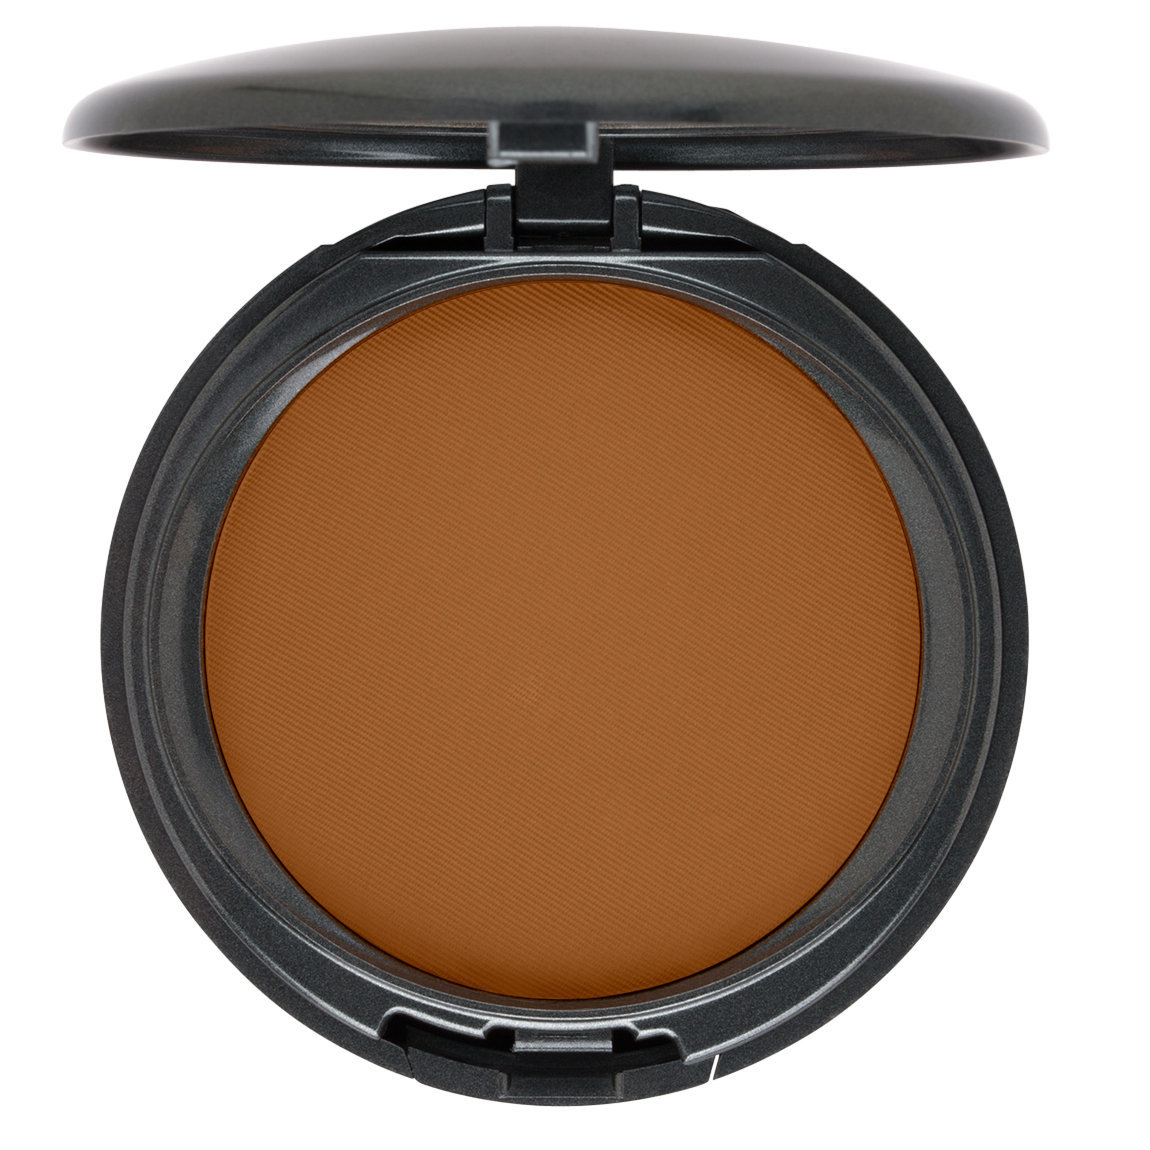 COVER | FX Pressed Mineral Foundation N90 alternative view 1 - product swatch.